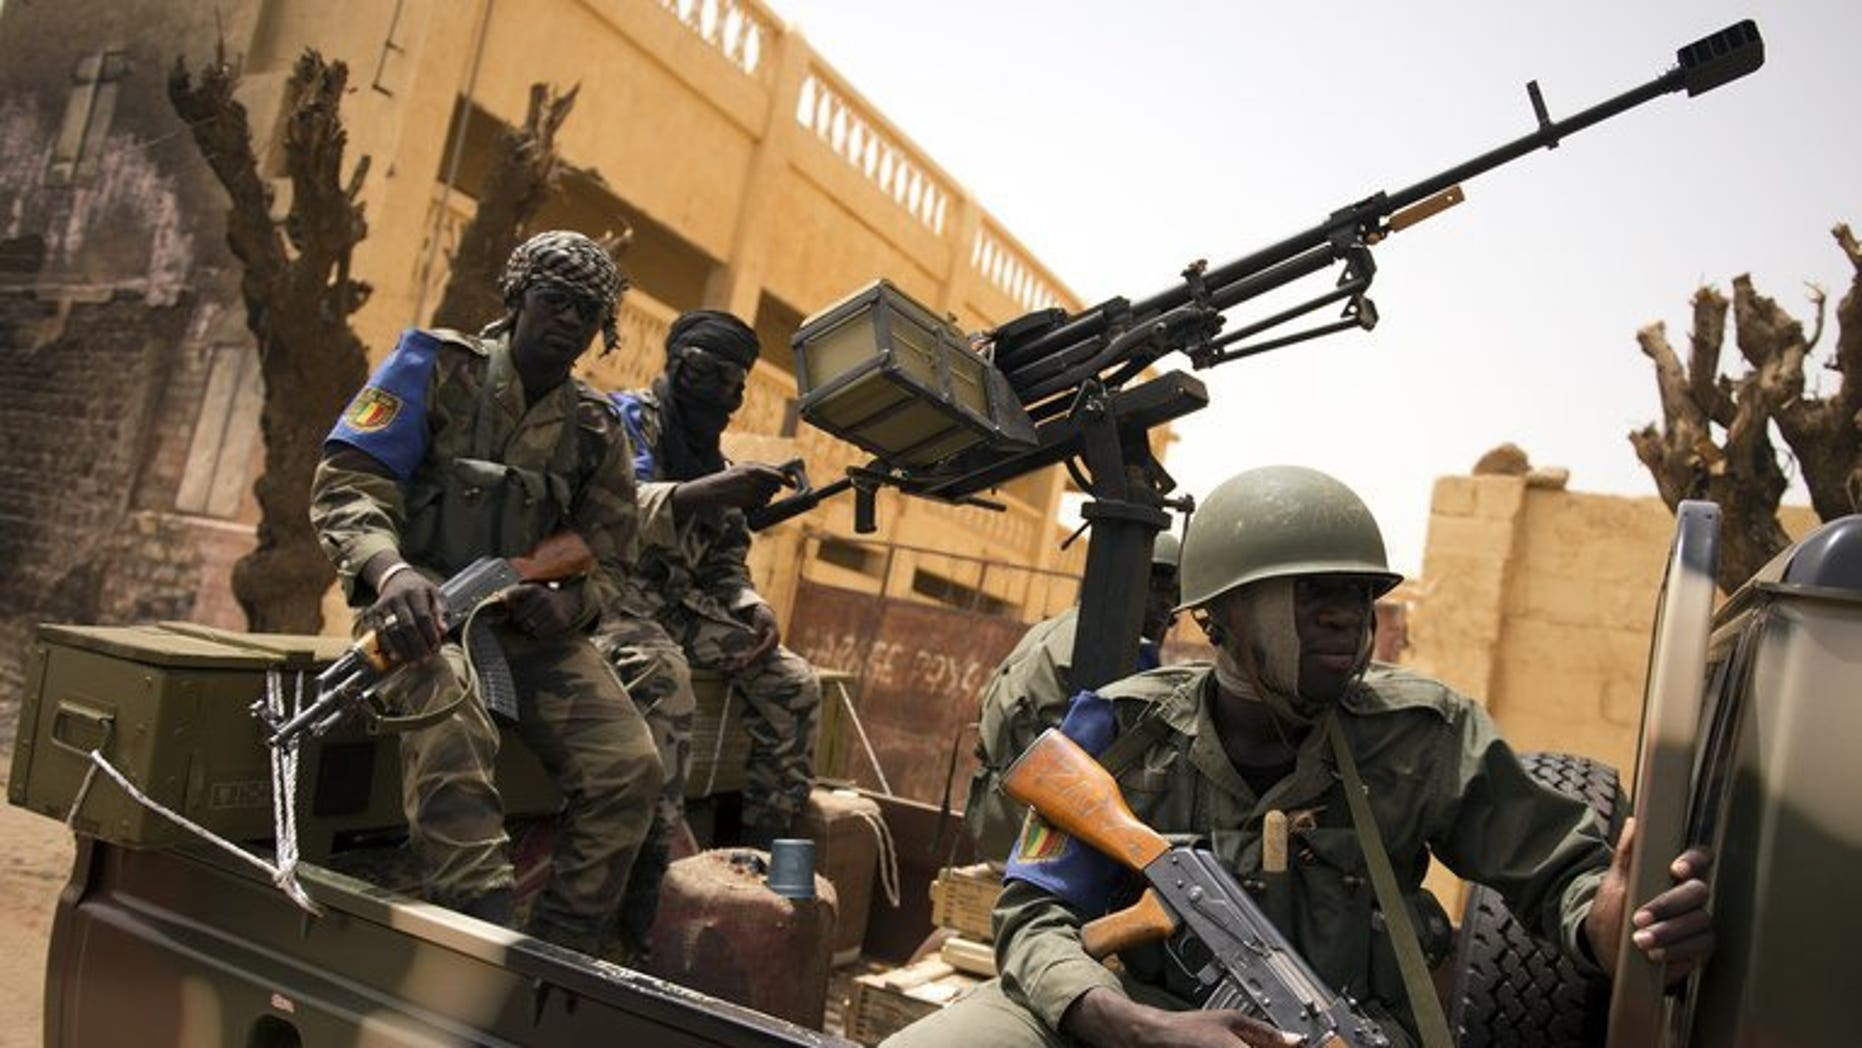 Malian soldiers patrol in the streets of Gao on June 13, 2013. Mali has lifted a five-month state of emergency, on the eve of the start of a presidential election campaign for July 28 polls in the troubled west African nation.